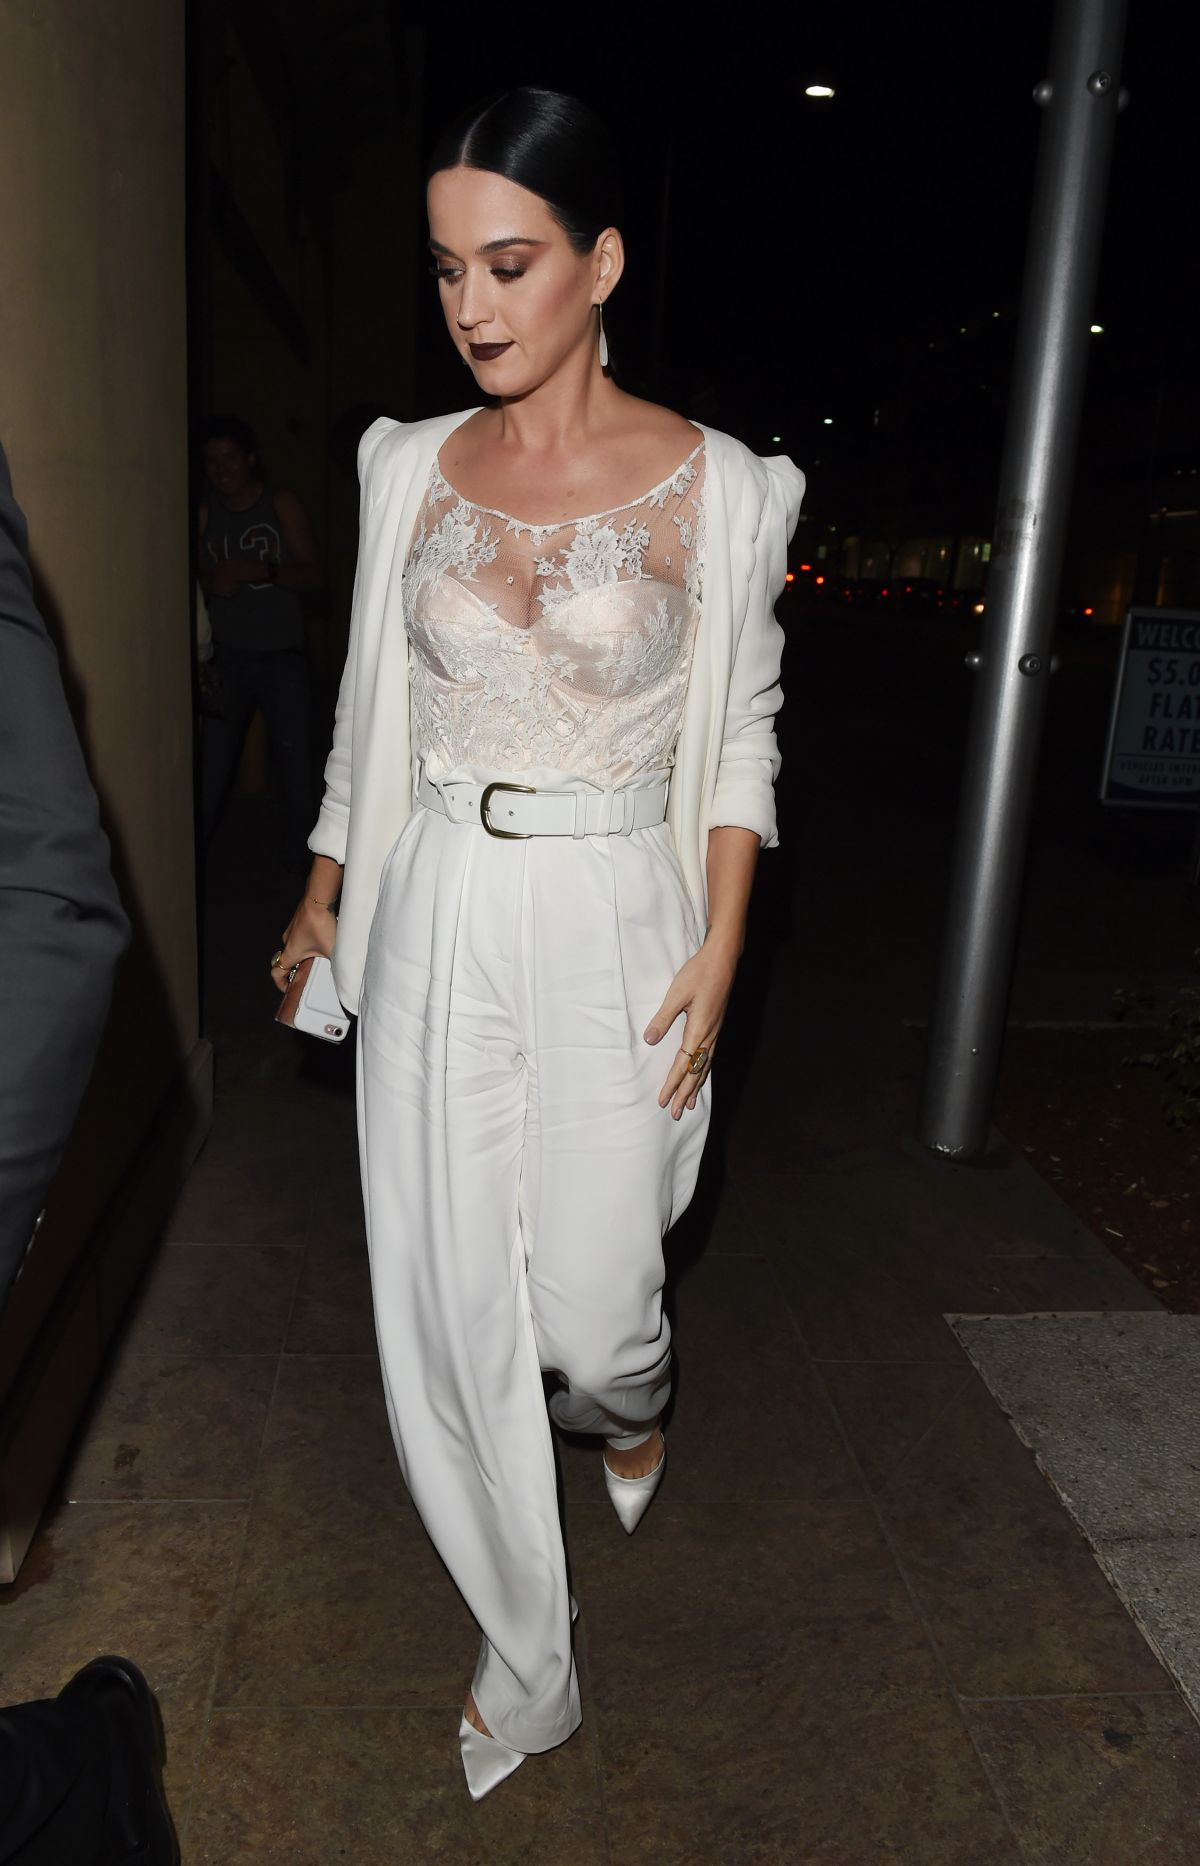 Katy perry at cfda vogue fashion fund fashion show in los angeles 10